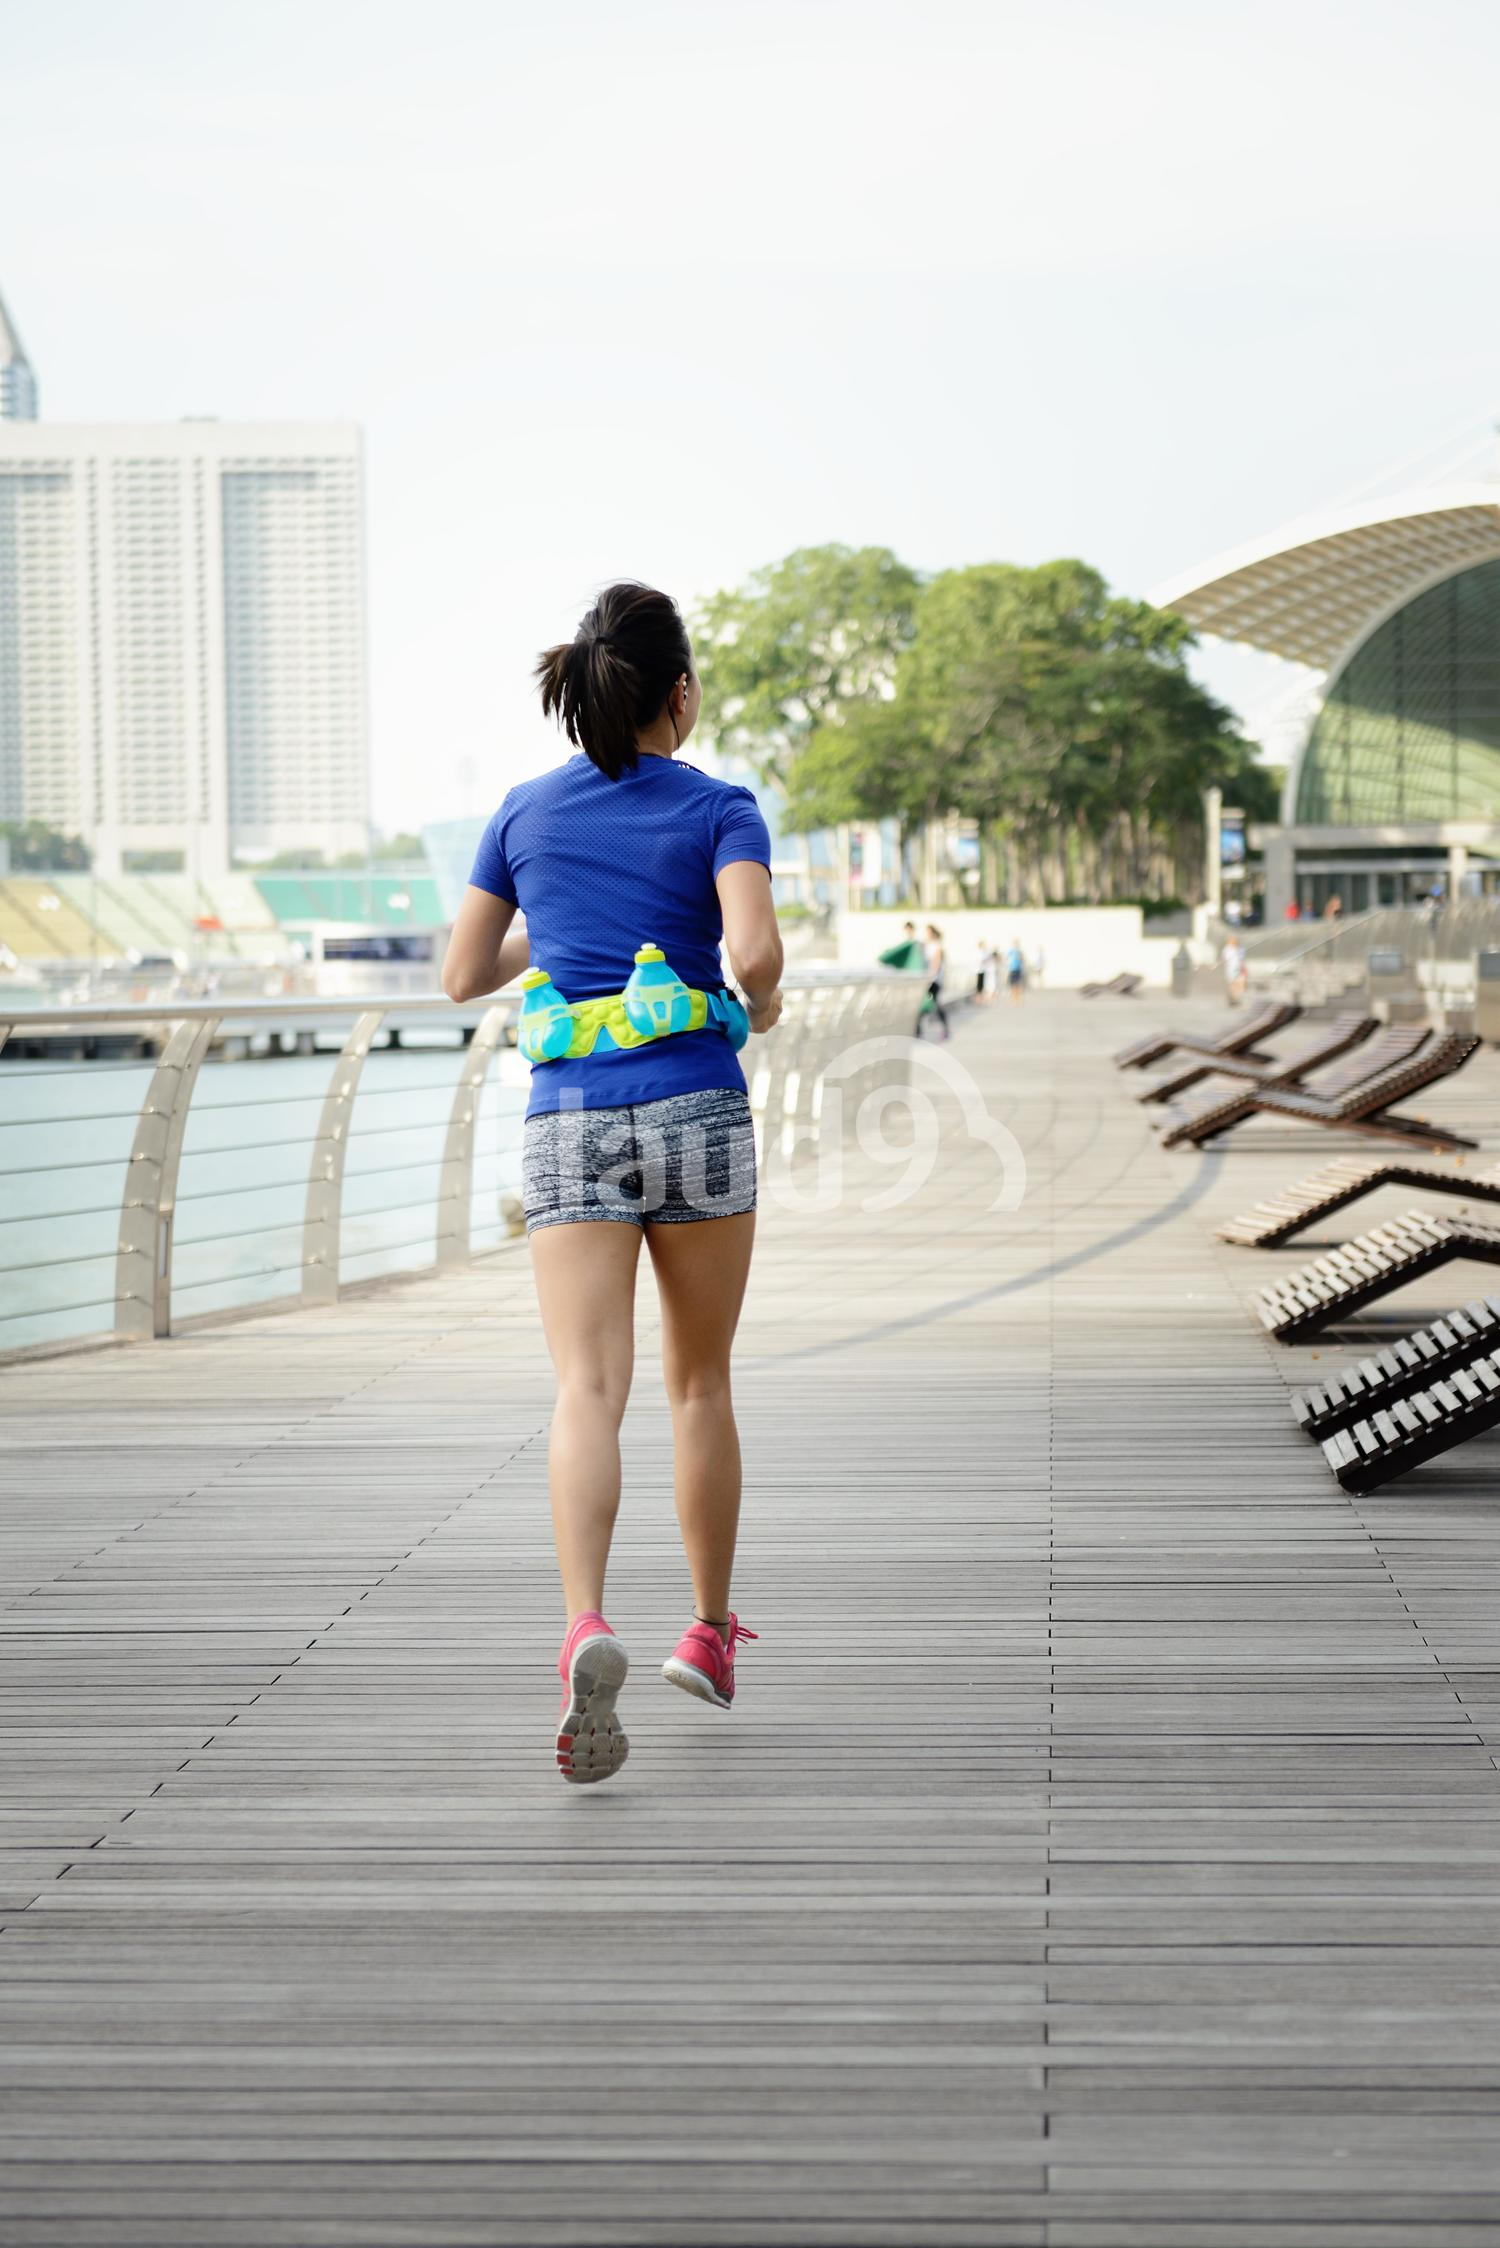 Backview of Woman Running